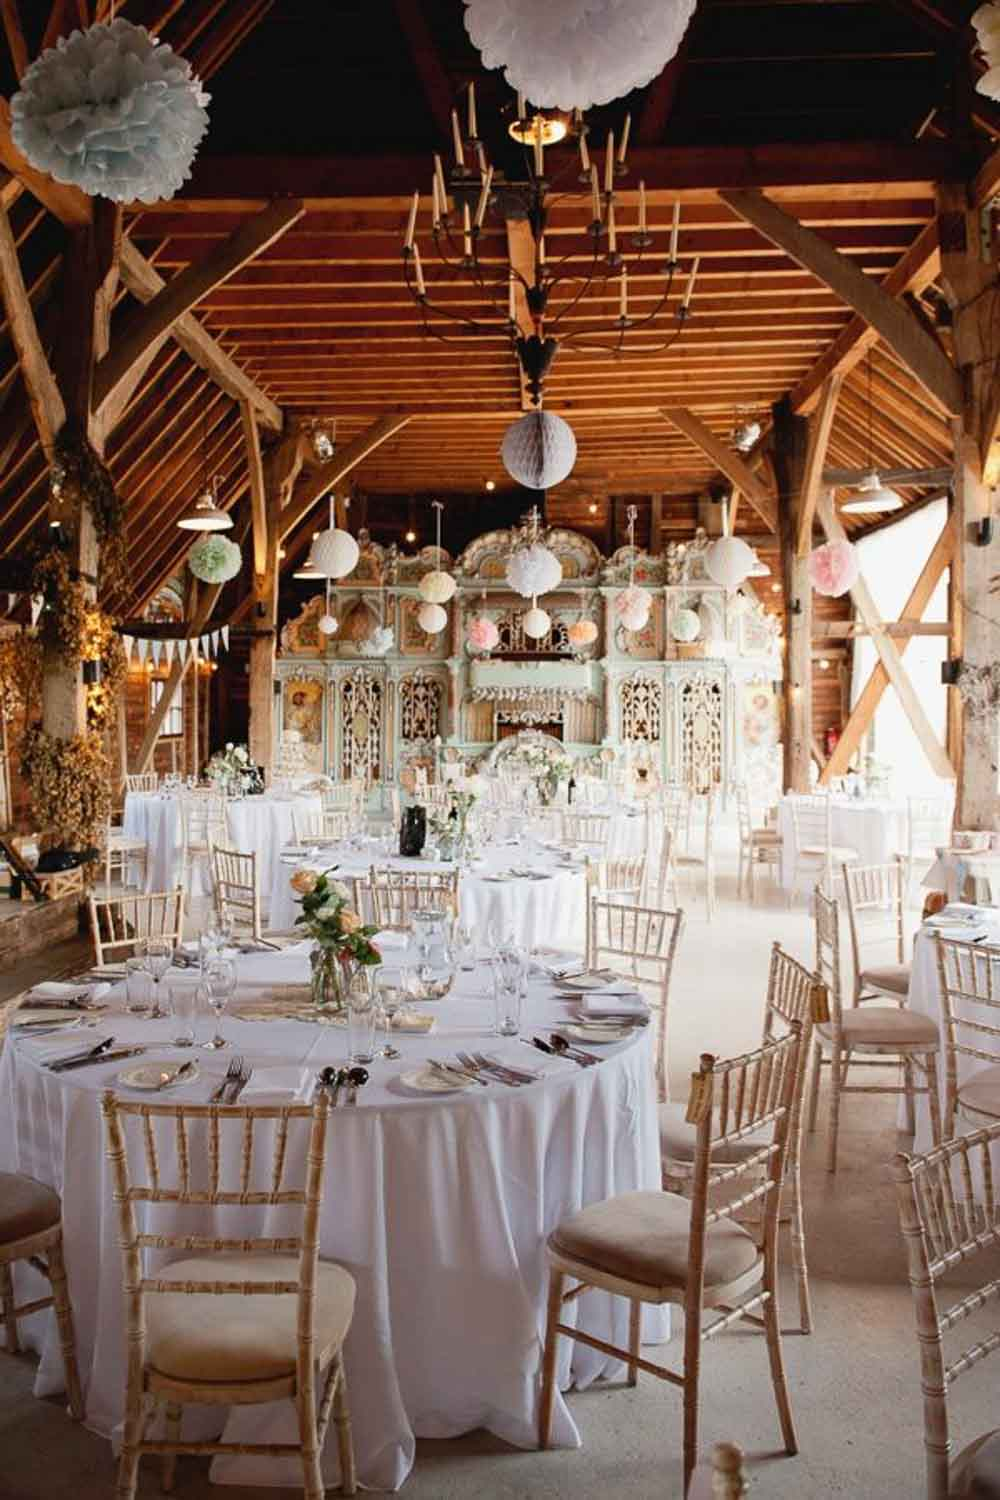 barn reception with white decor.JPG